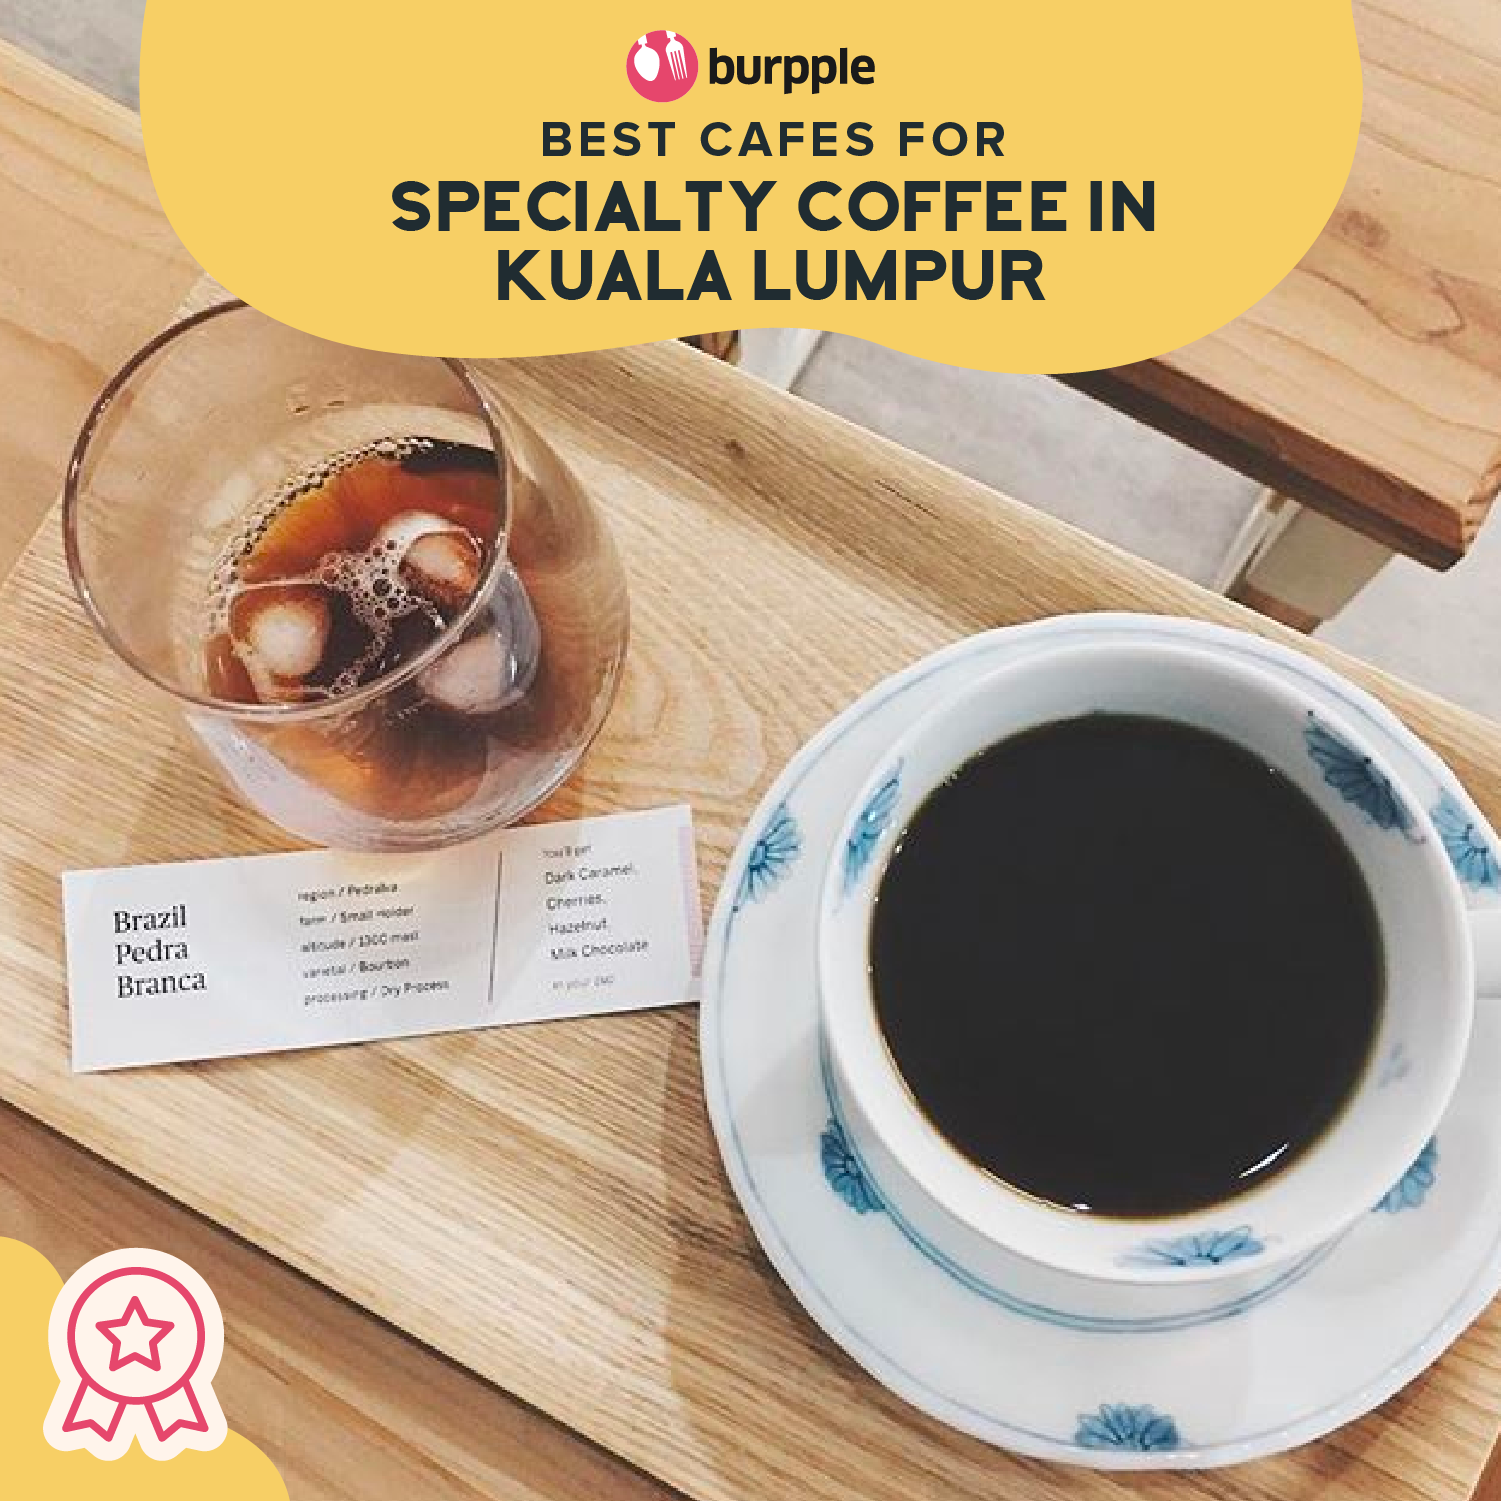 Best Cafes for Specialty Coffee in KL